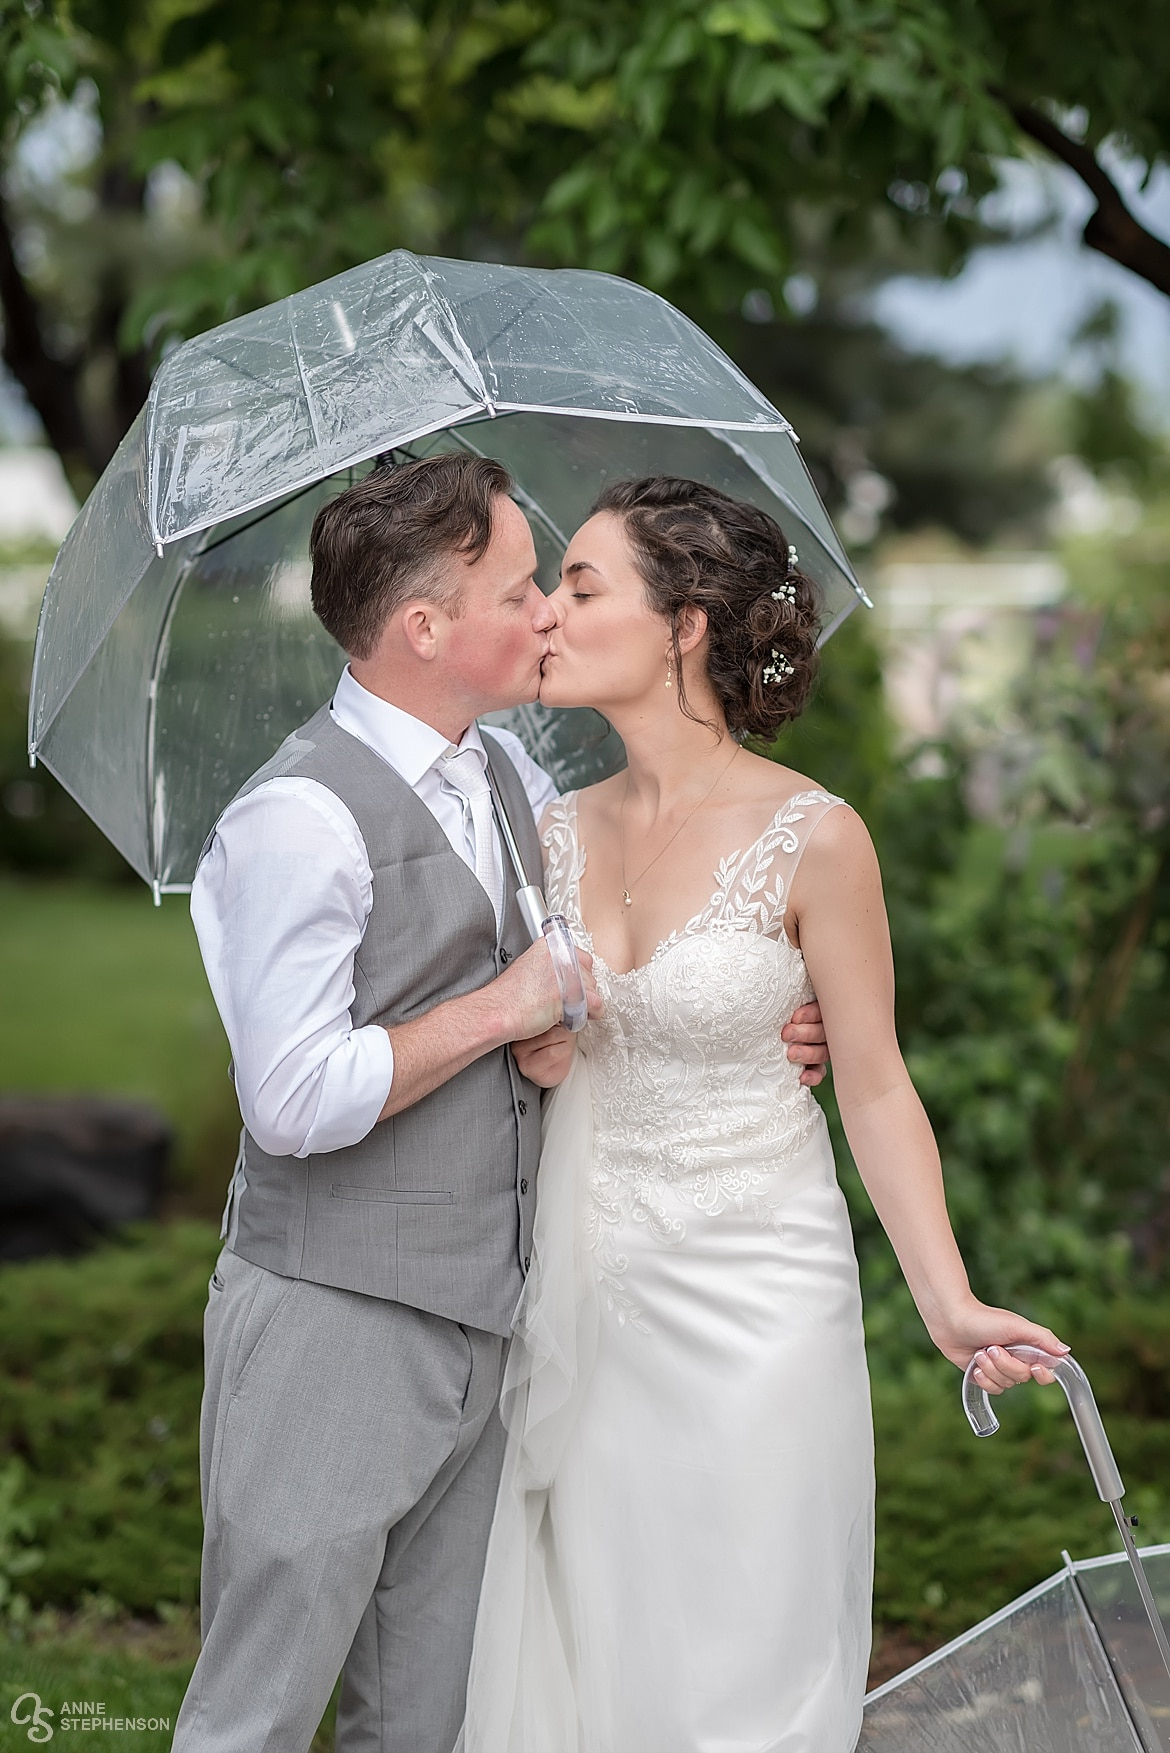 The groom shares his umbrella and a kiss with the bride.